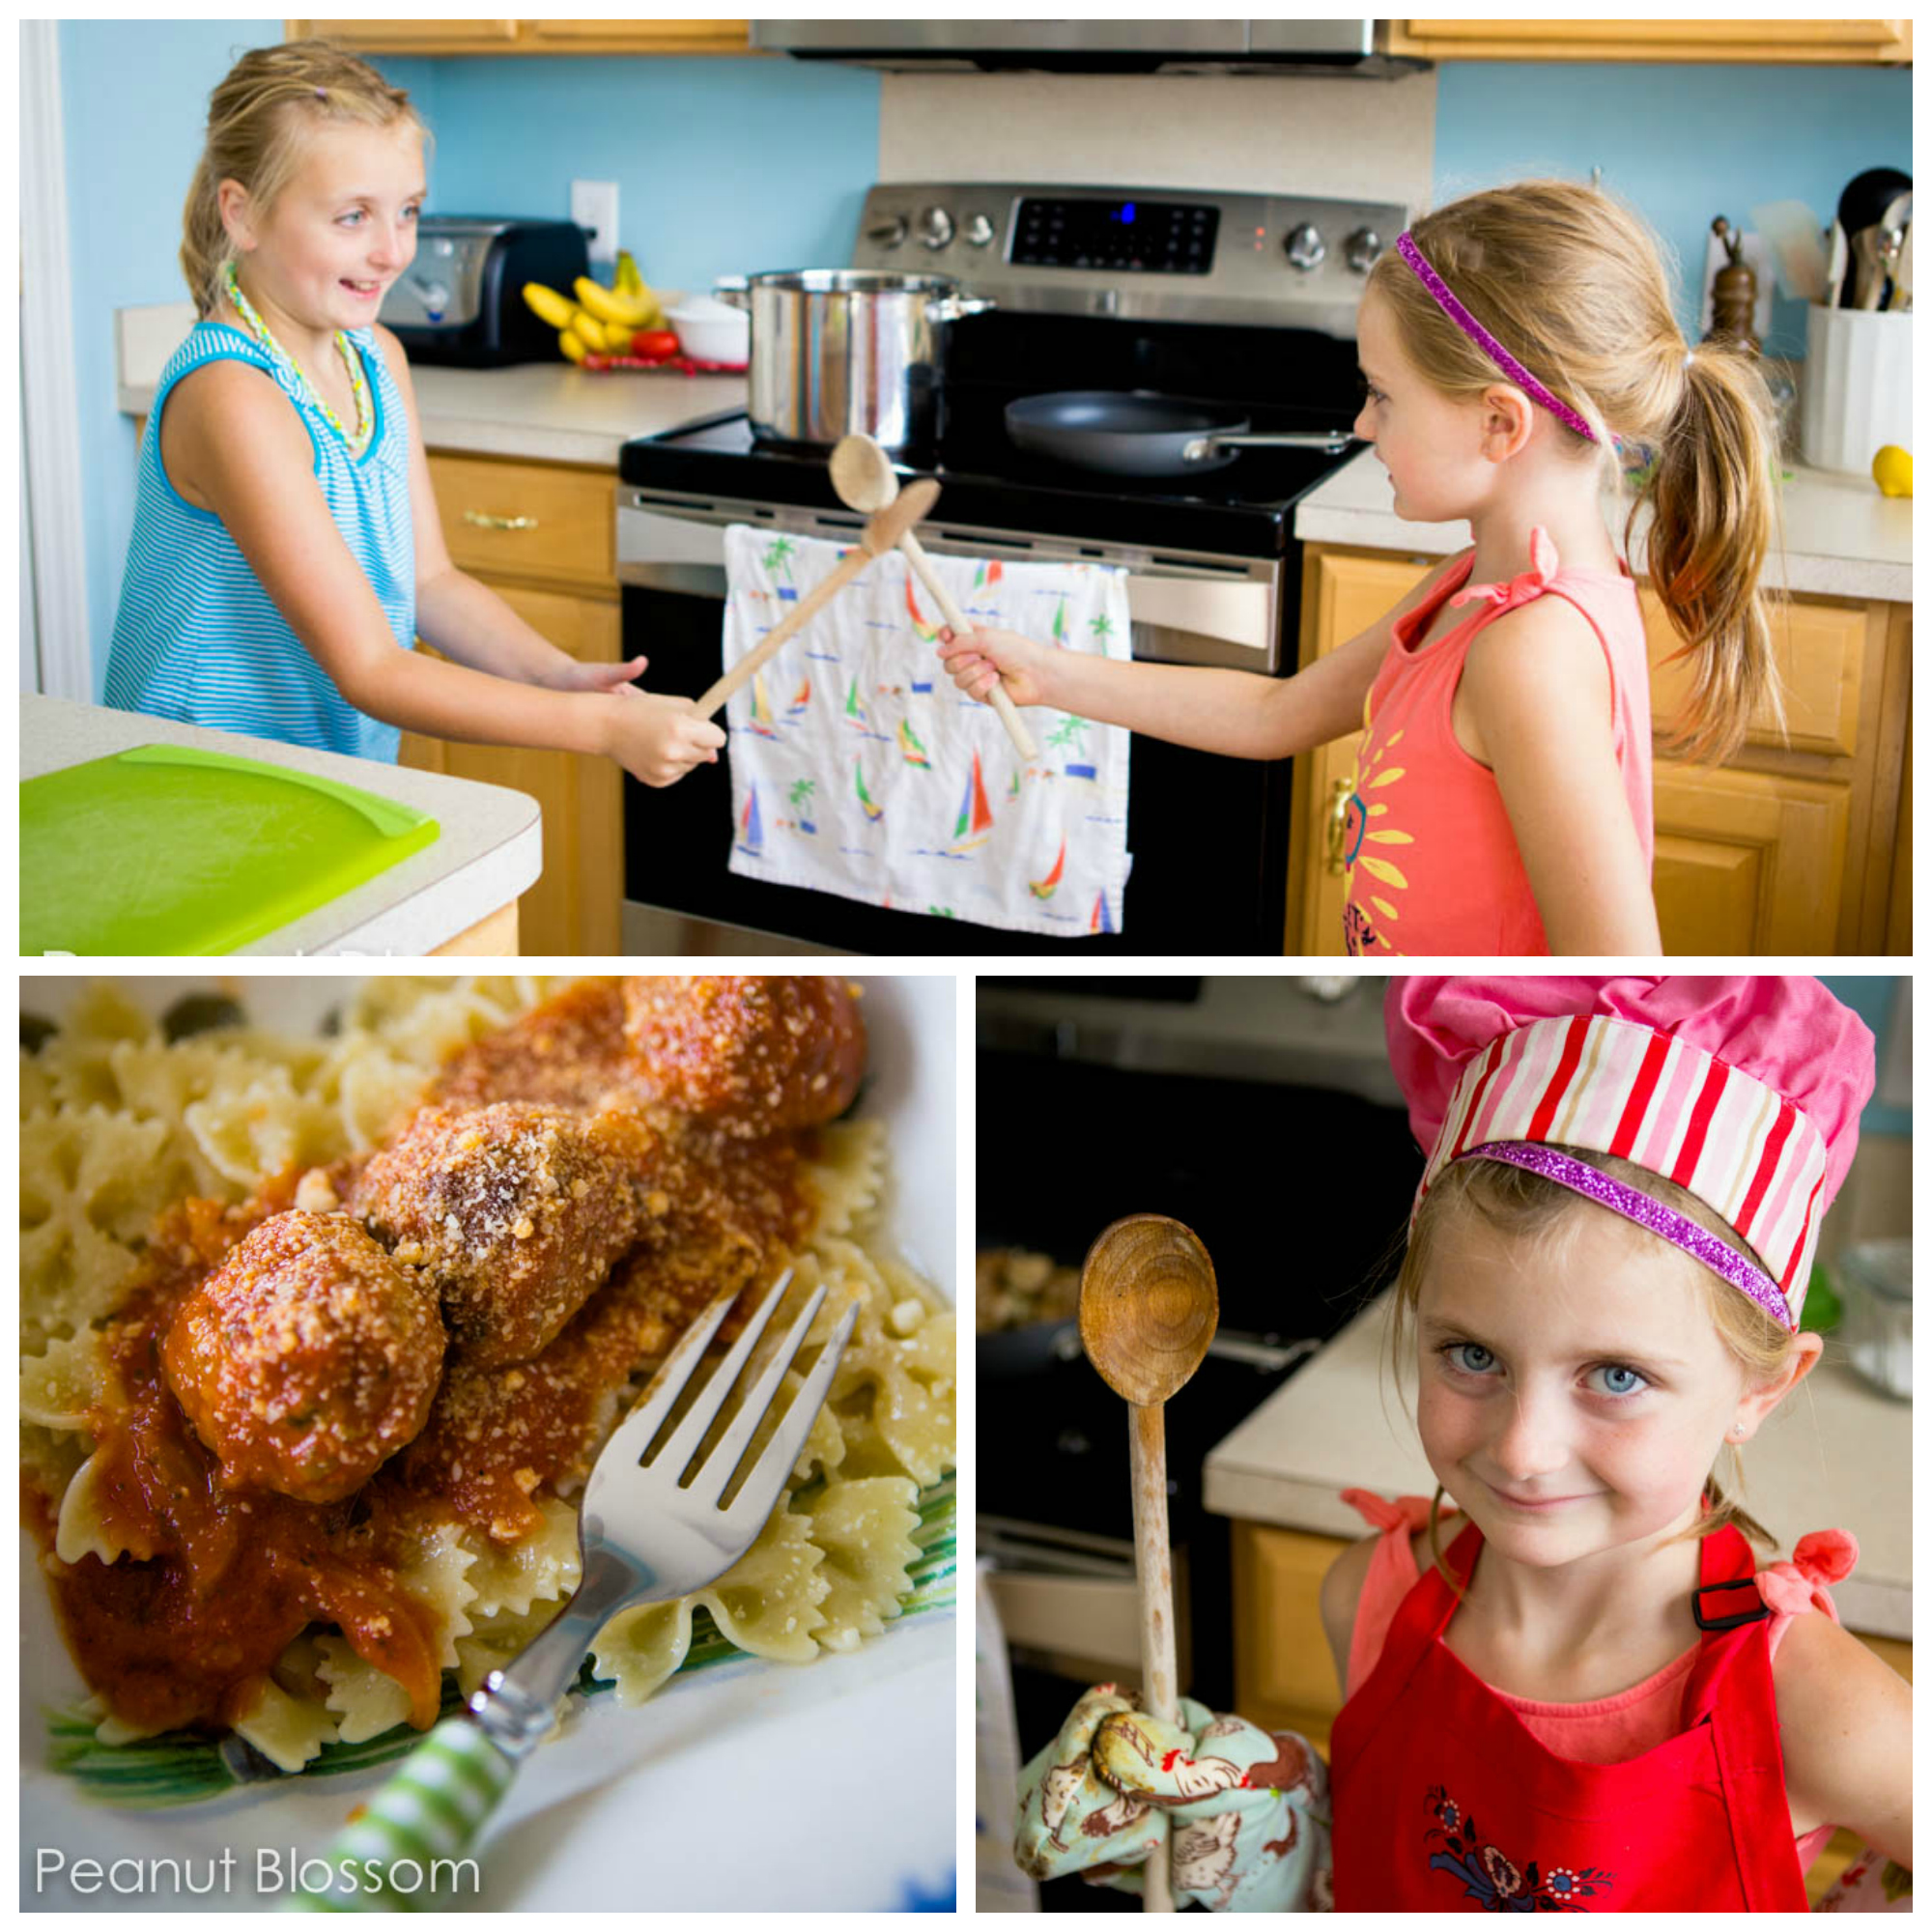 How to get kids cooking in the kitchen